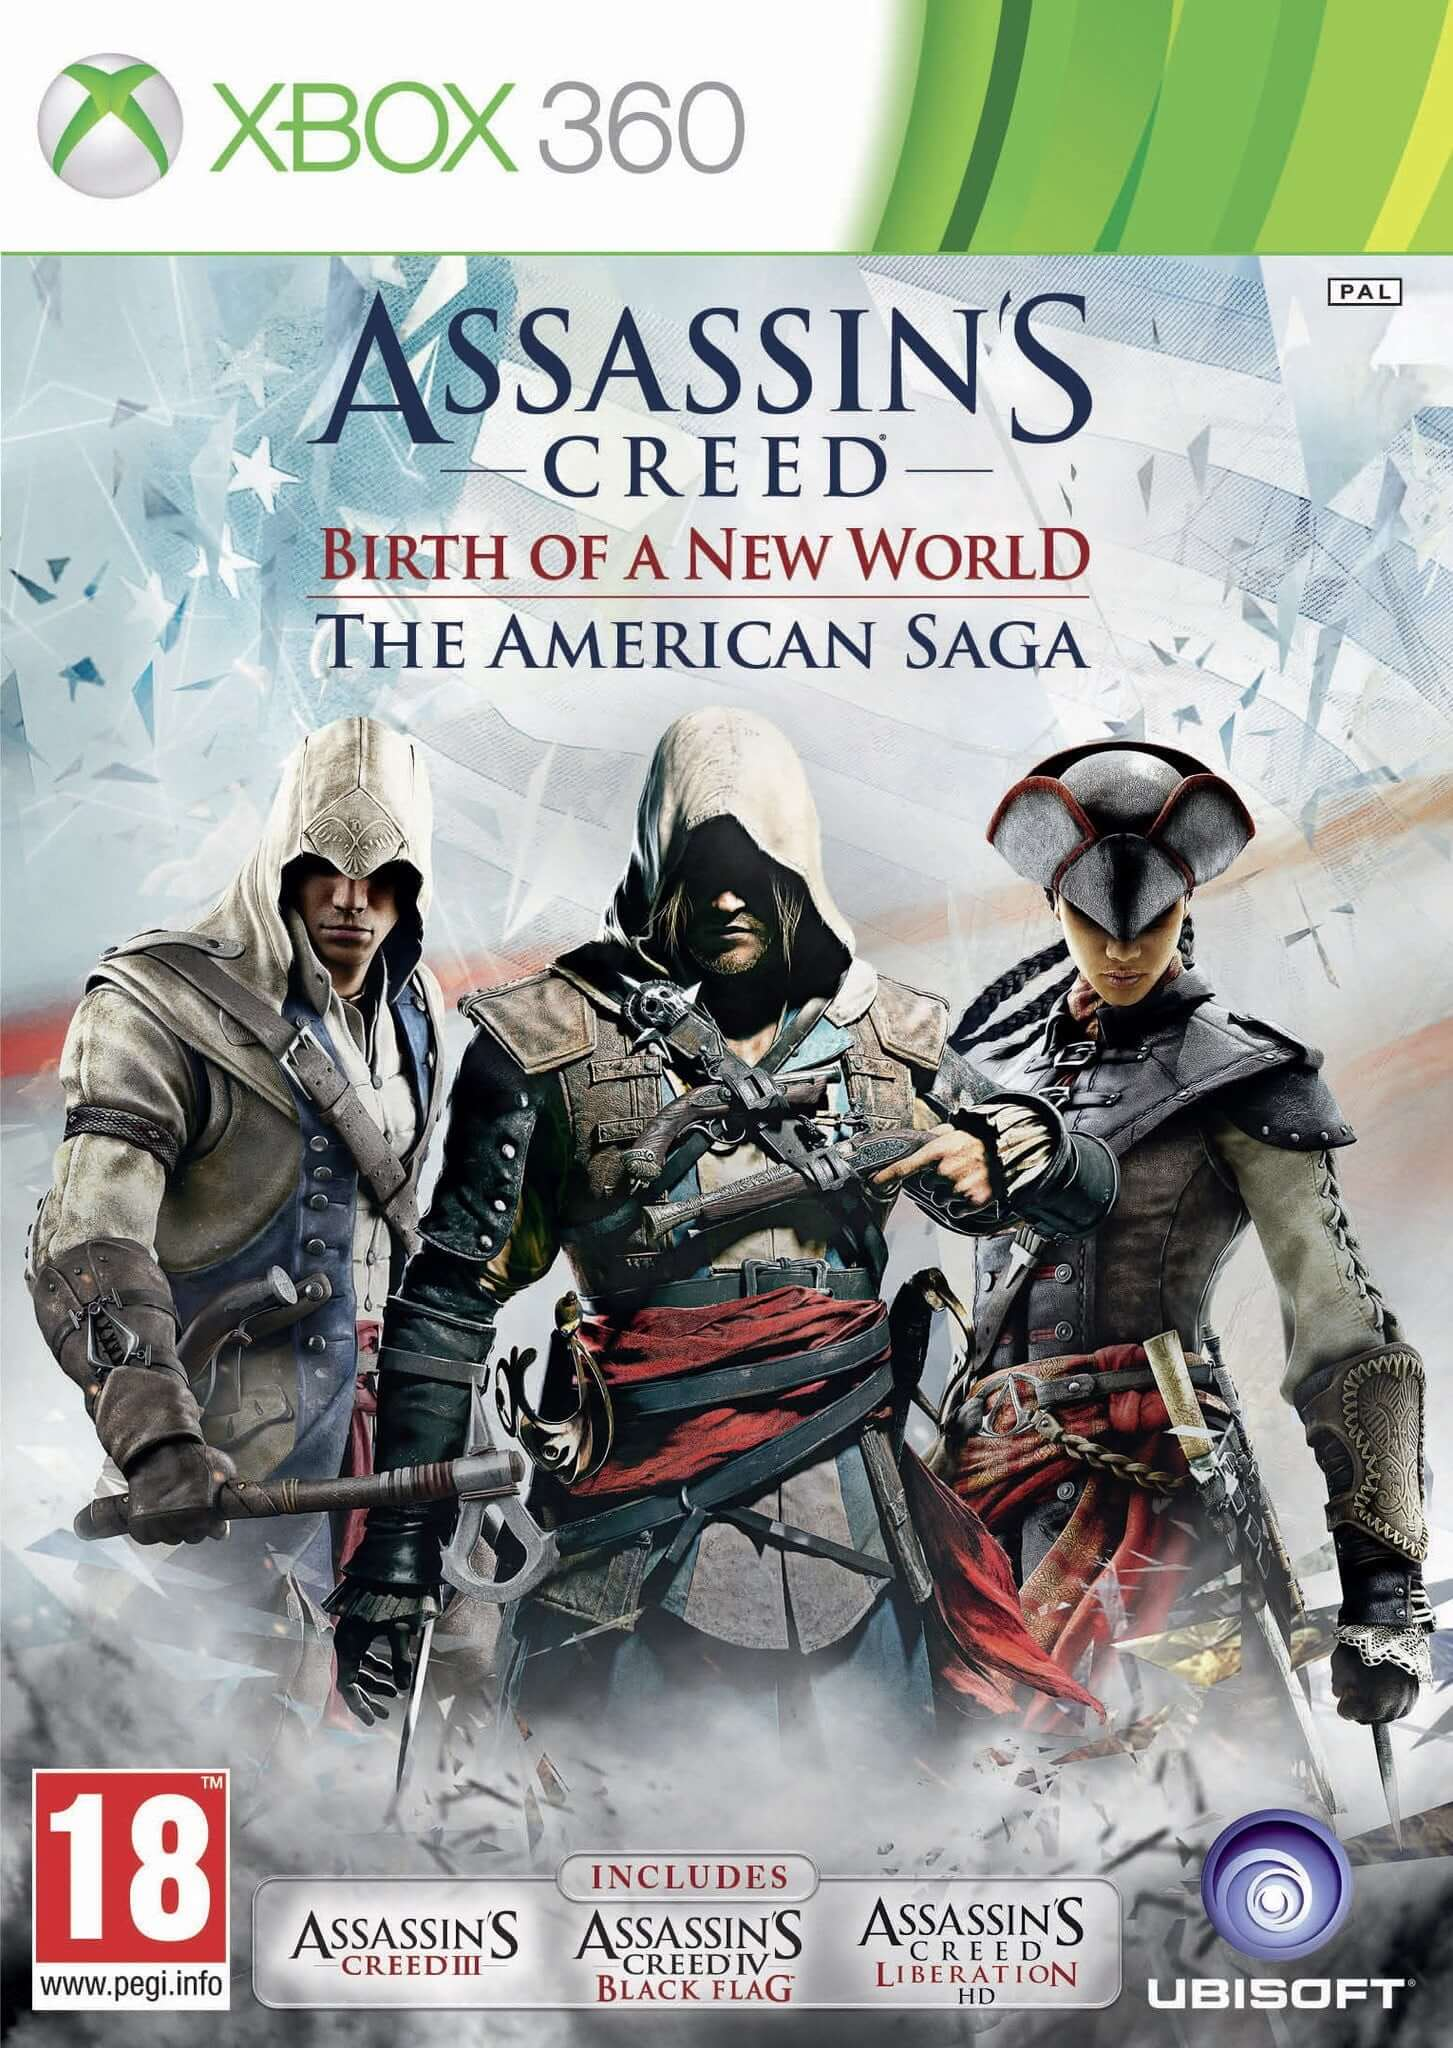 Buy Assassin's Creed Birth Of New World (XBOX 360) XBOX 360 Game in Egypt - Shamy Stores